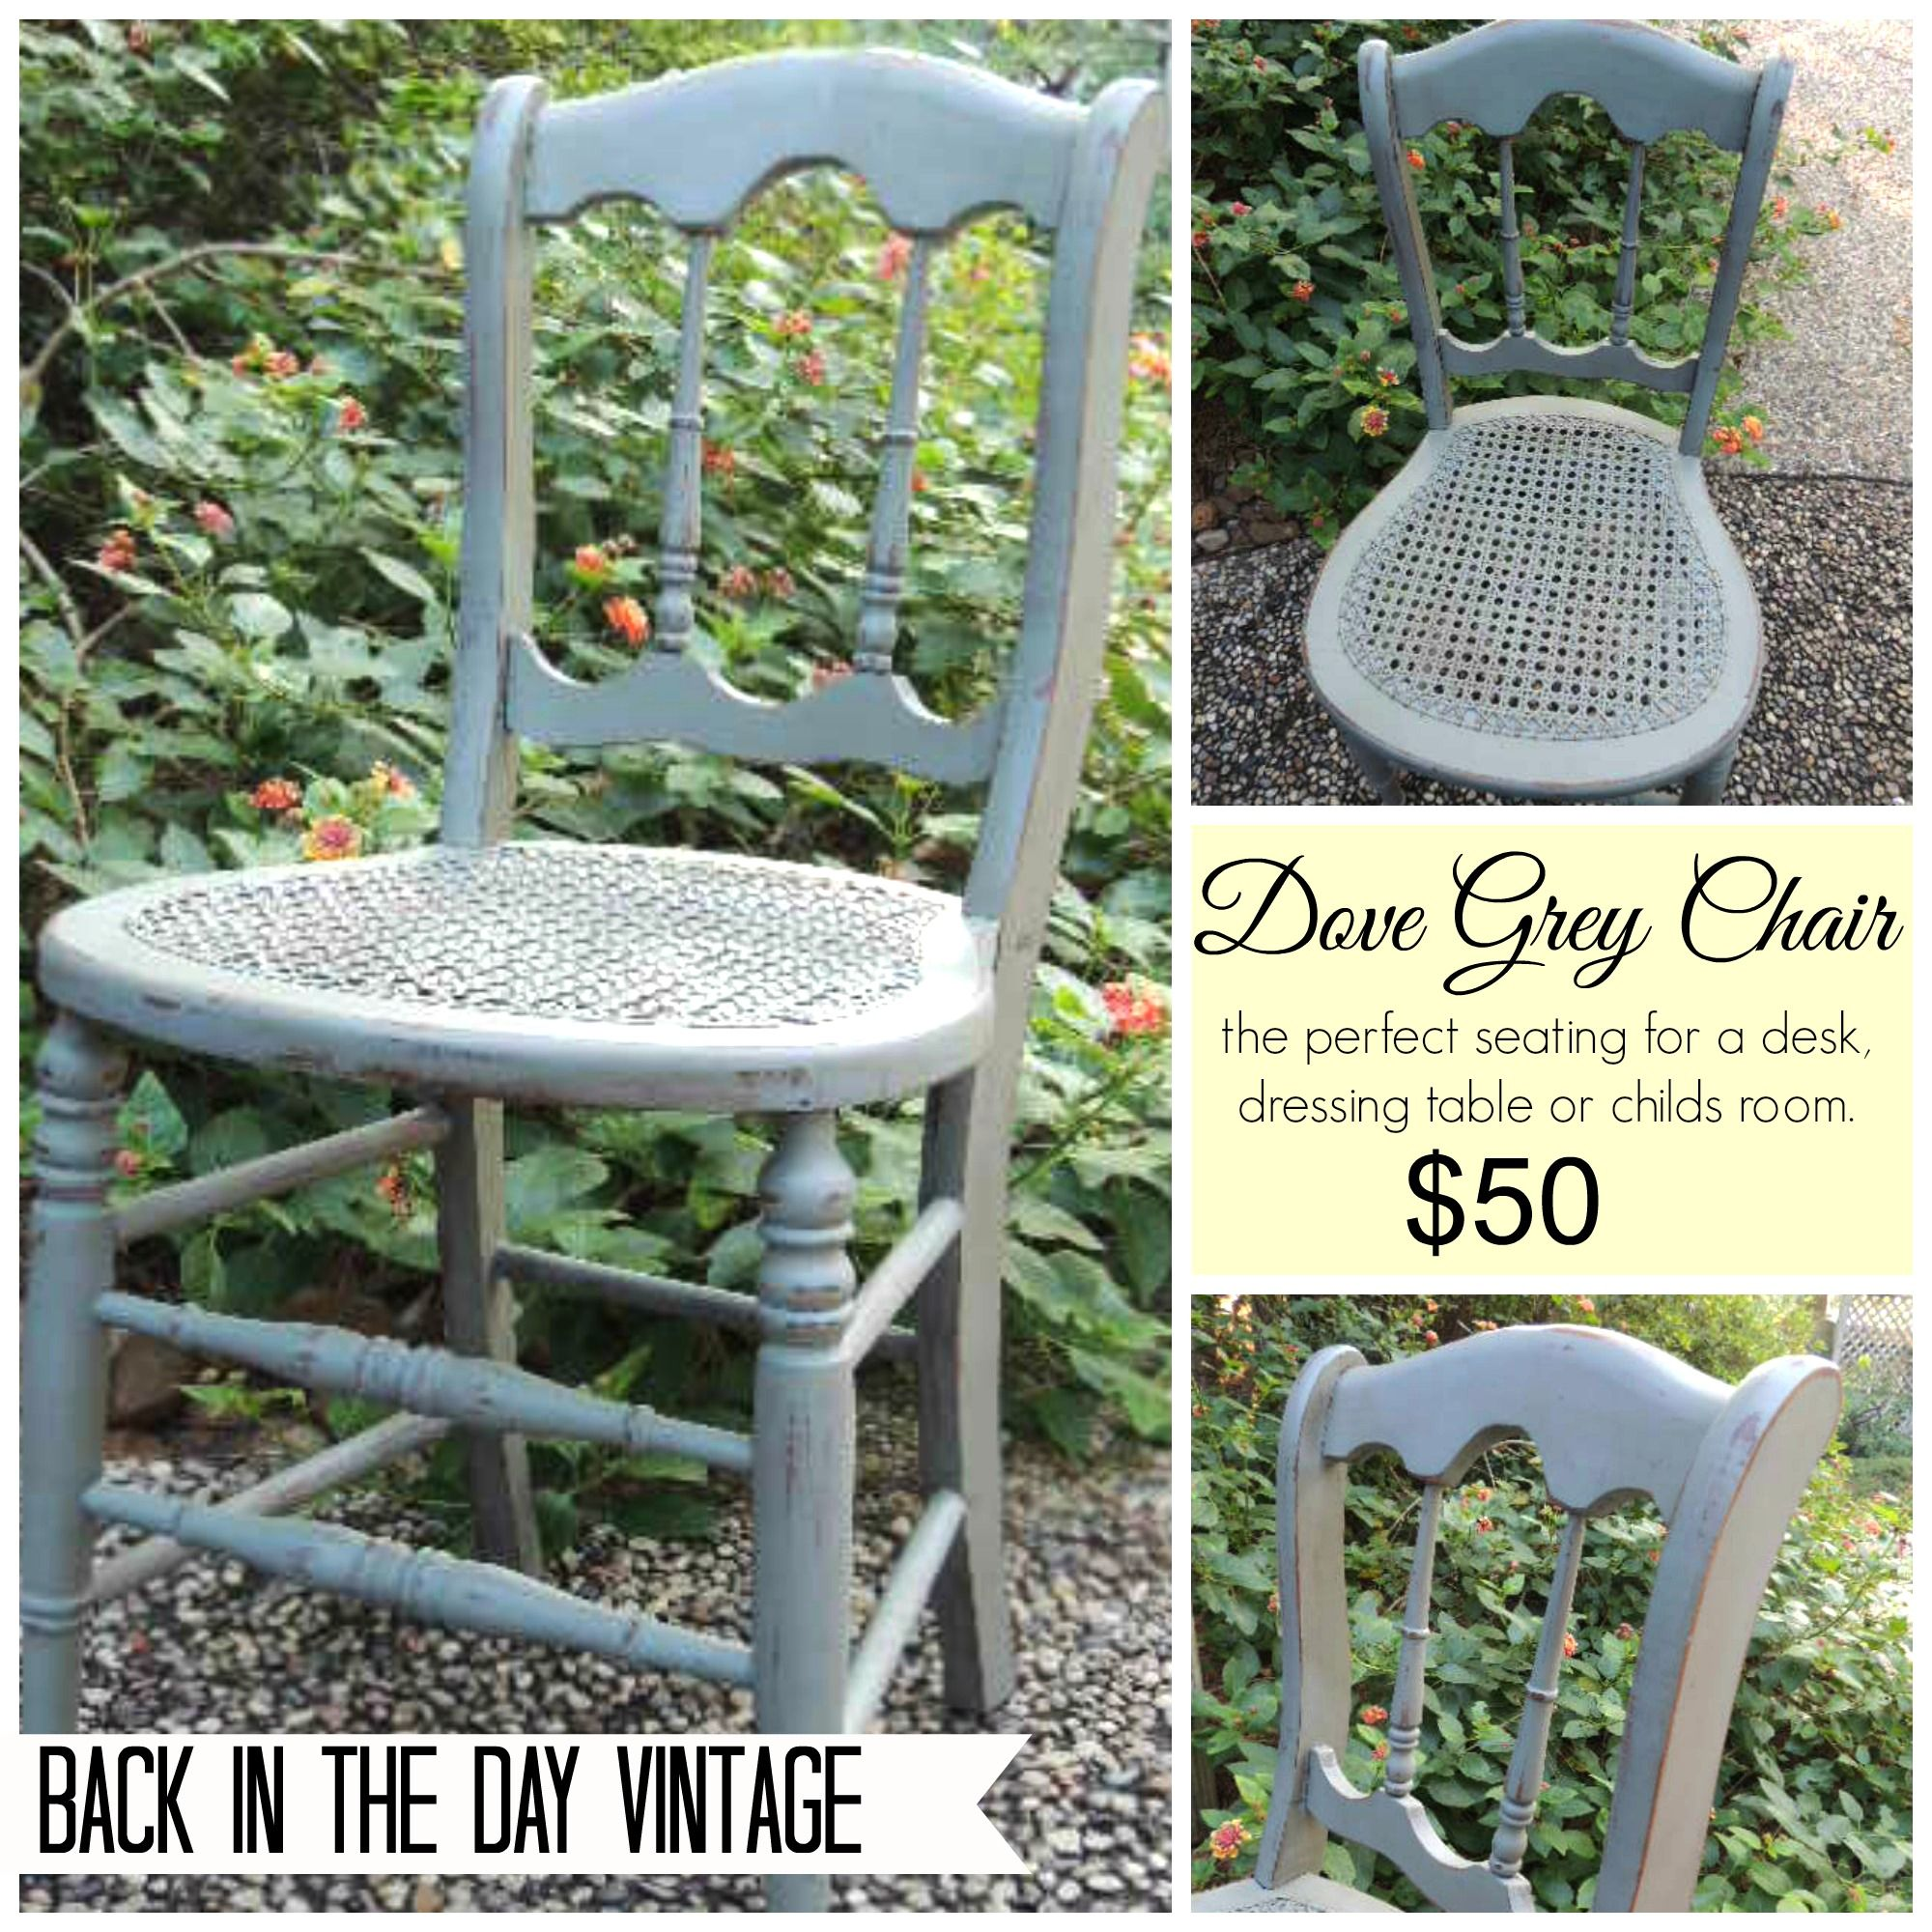 Vintage chair painted Dove Grey made by Back In The Day Vintage of Spring, TX